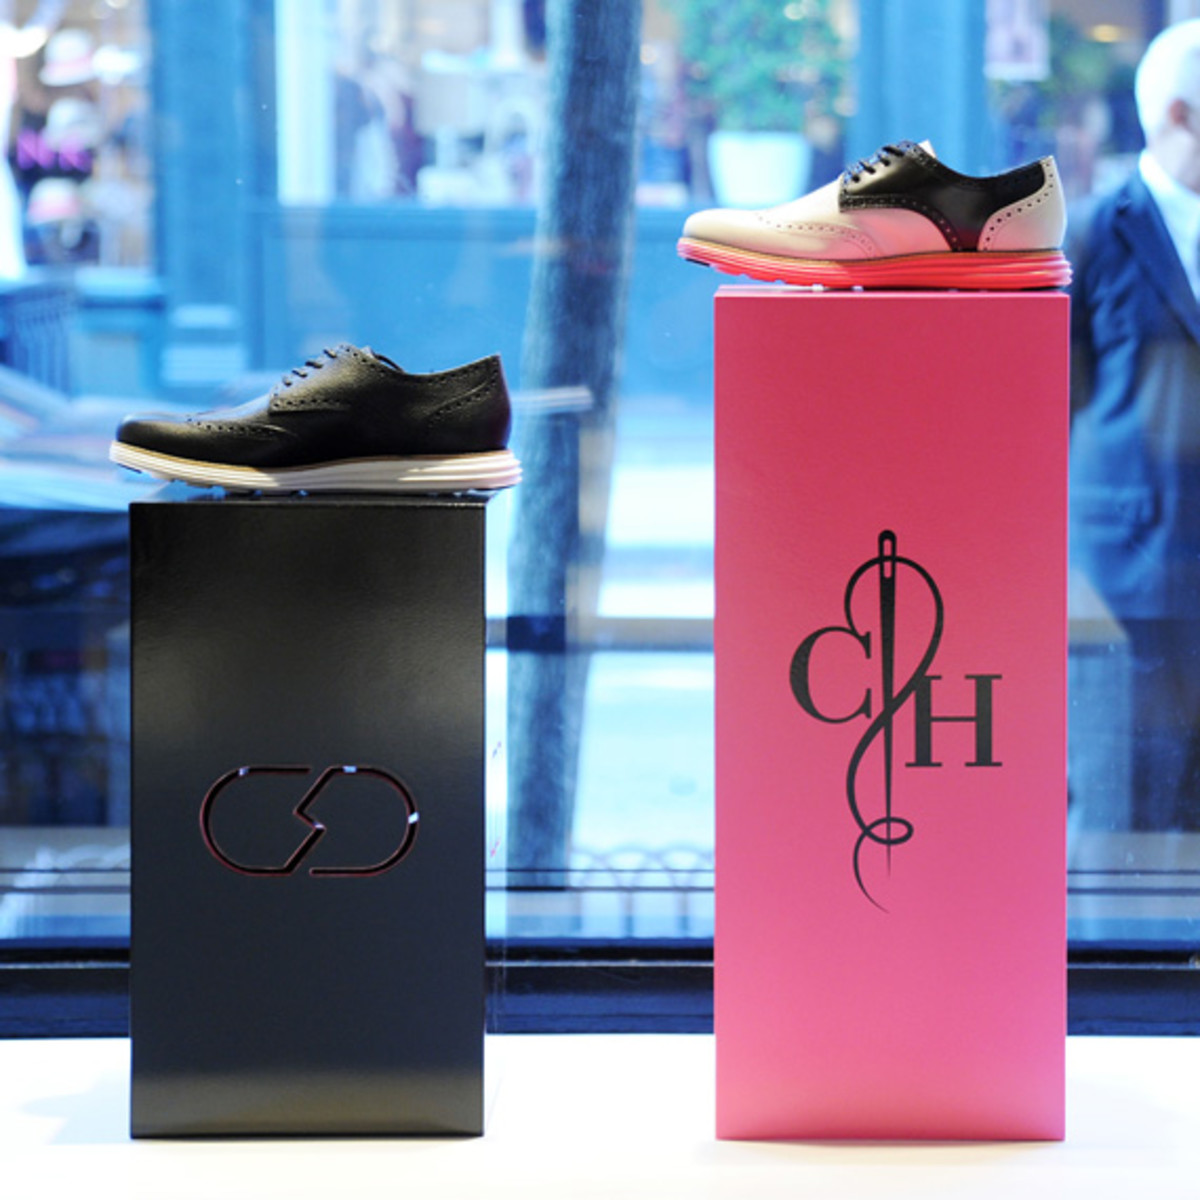 fragment-design-cole-haan-lunargrand-collection-launch-06